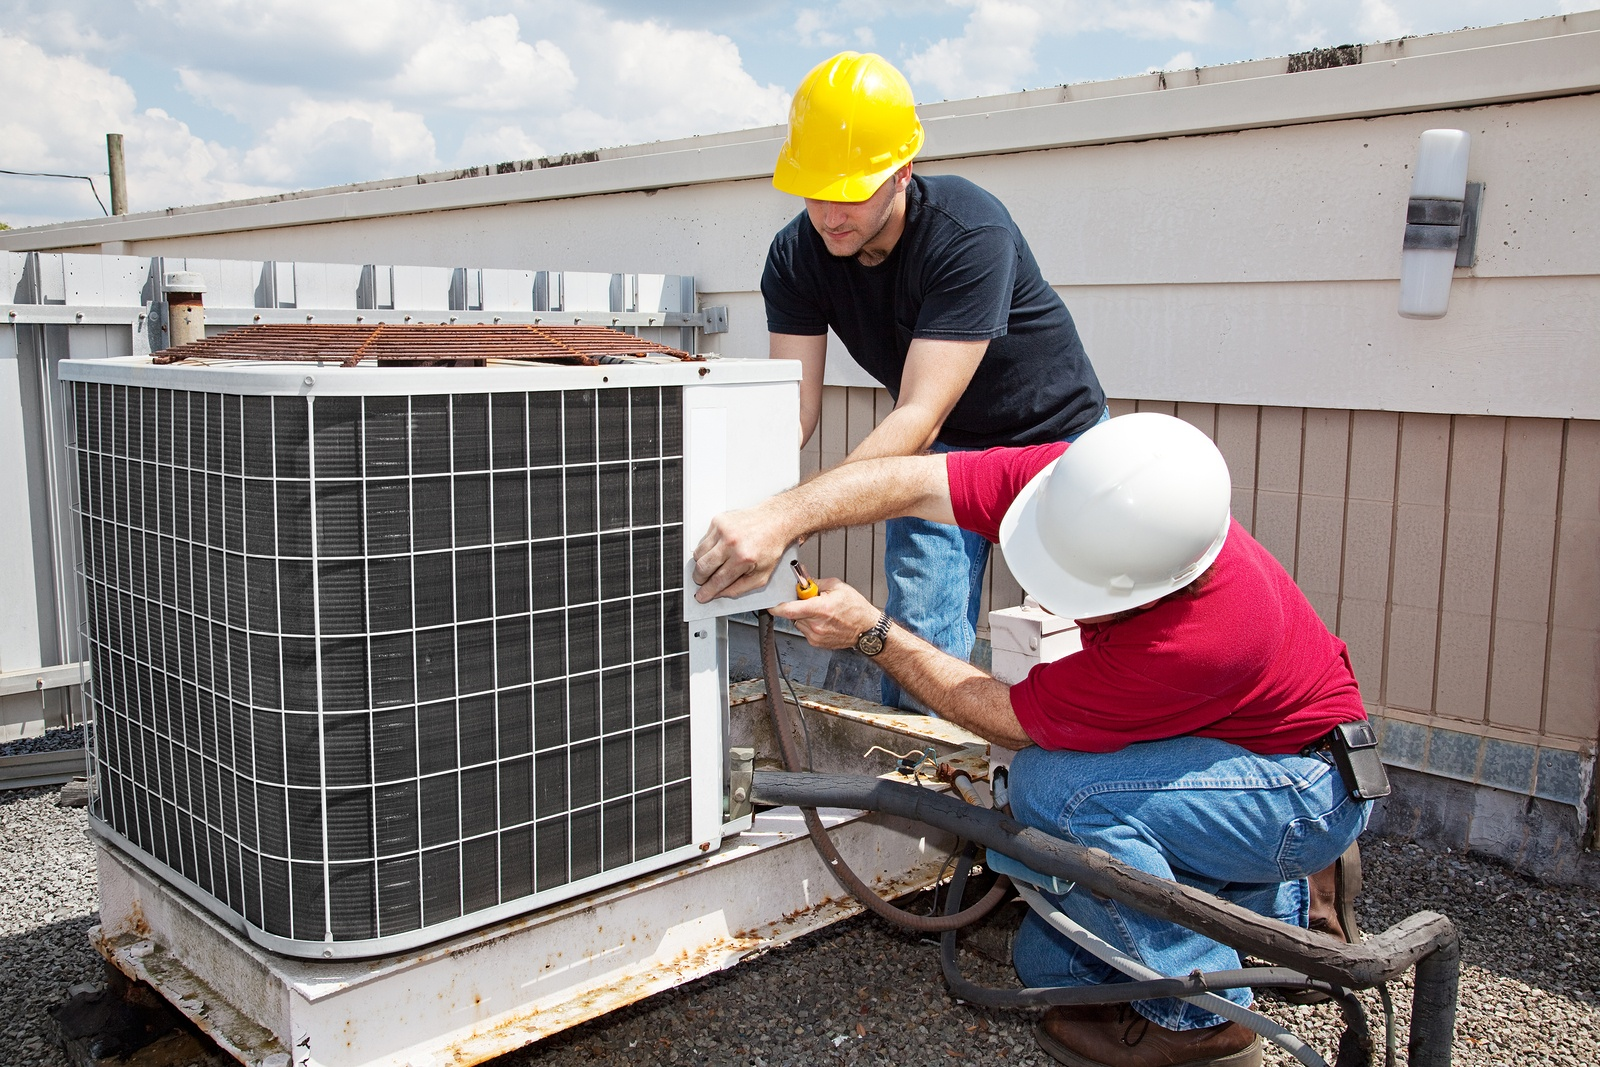 bigstock-Two-workers-on-the-roof-of-a-b-11990135.jpg